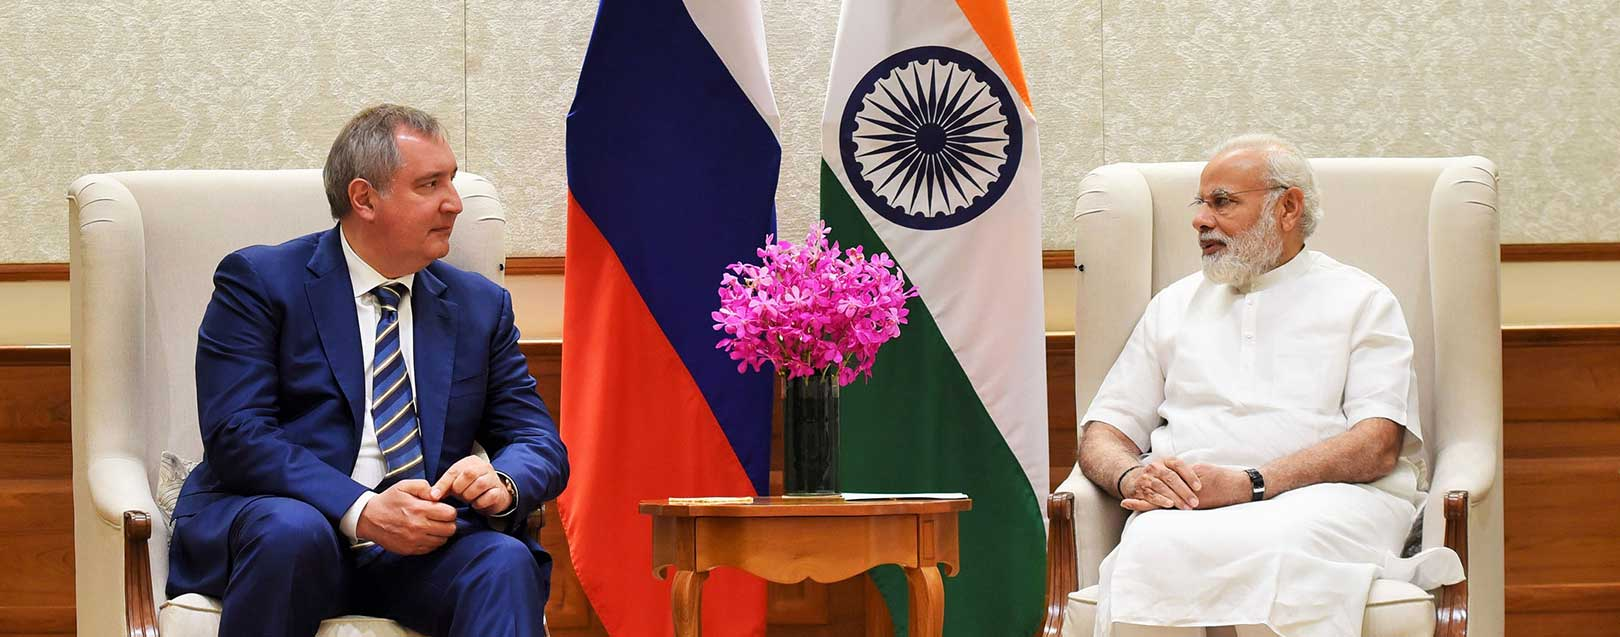 India, Russia review joint projects before Modi-Putin summit